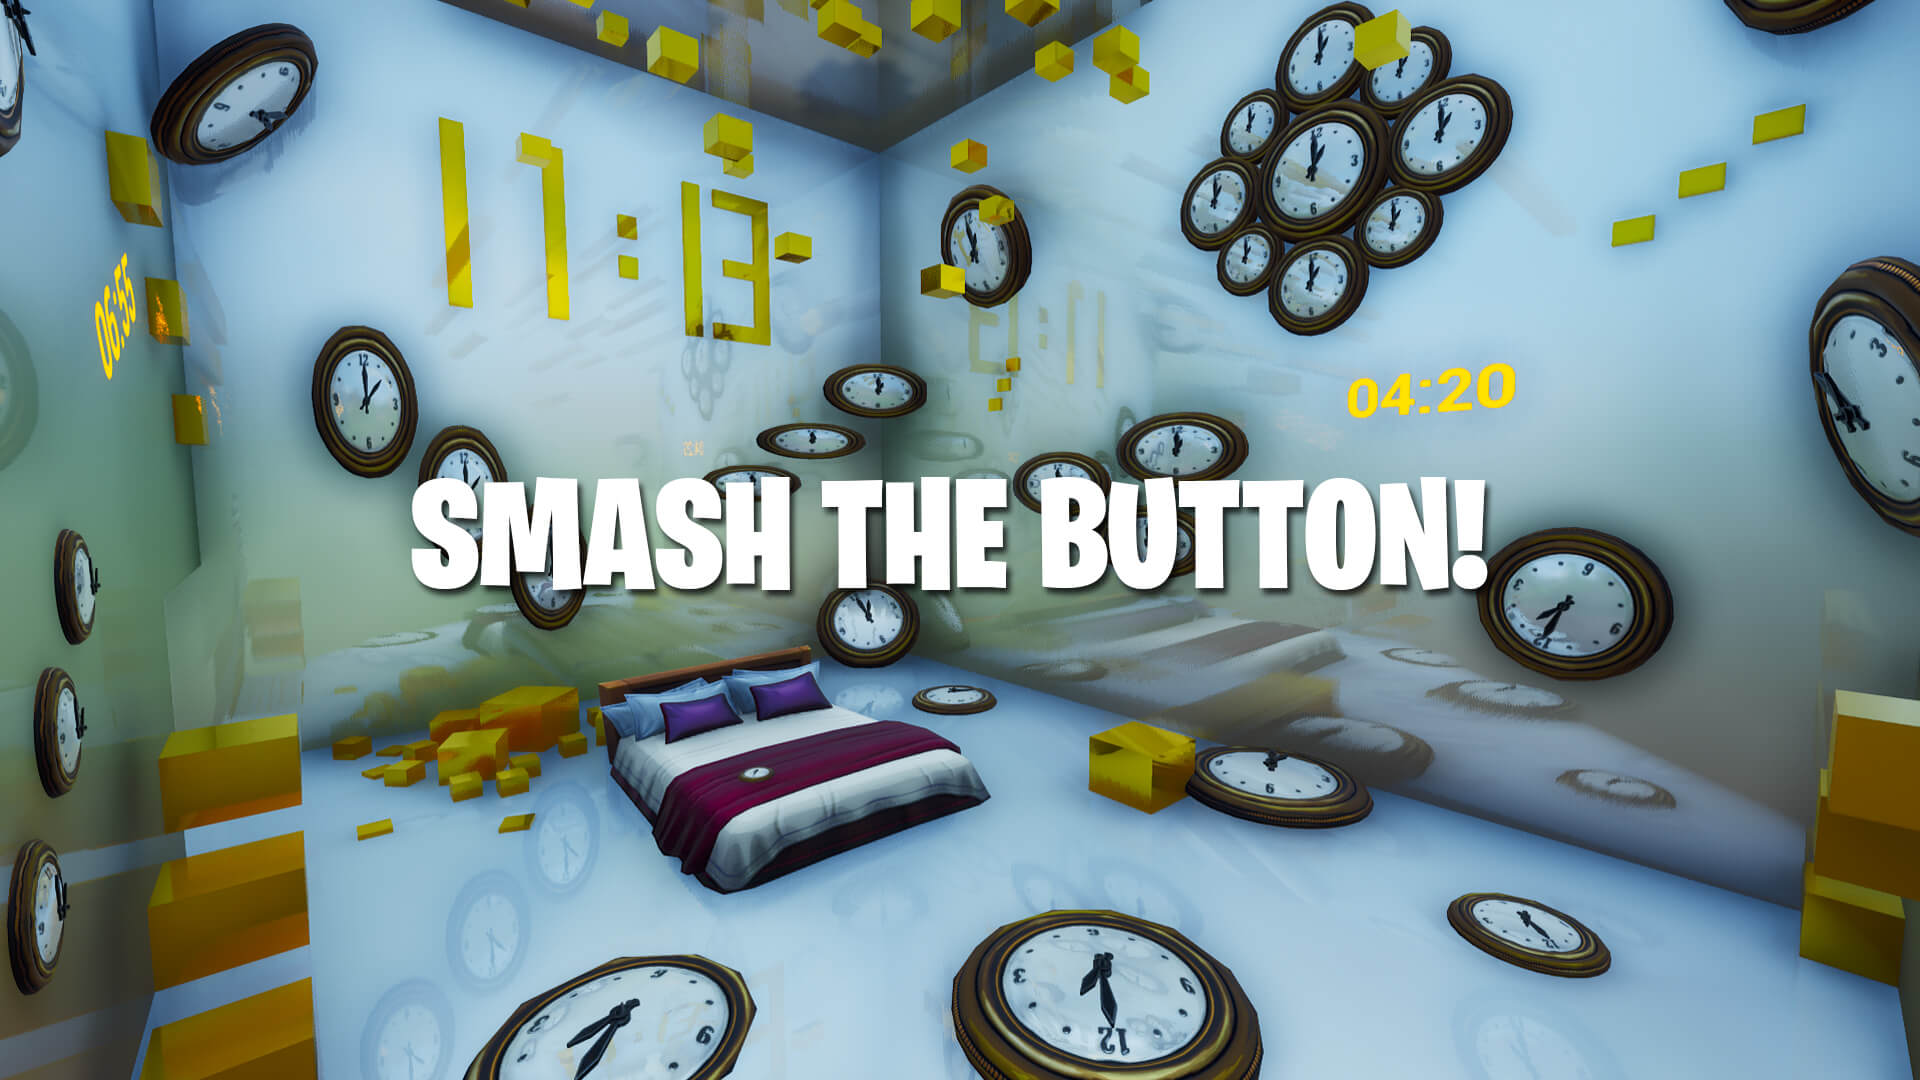 SMASH THE BUTTON!